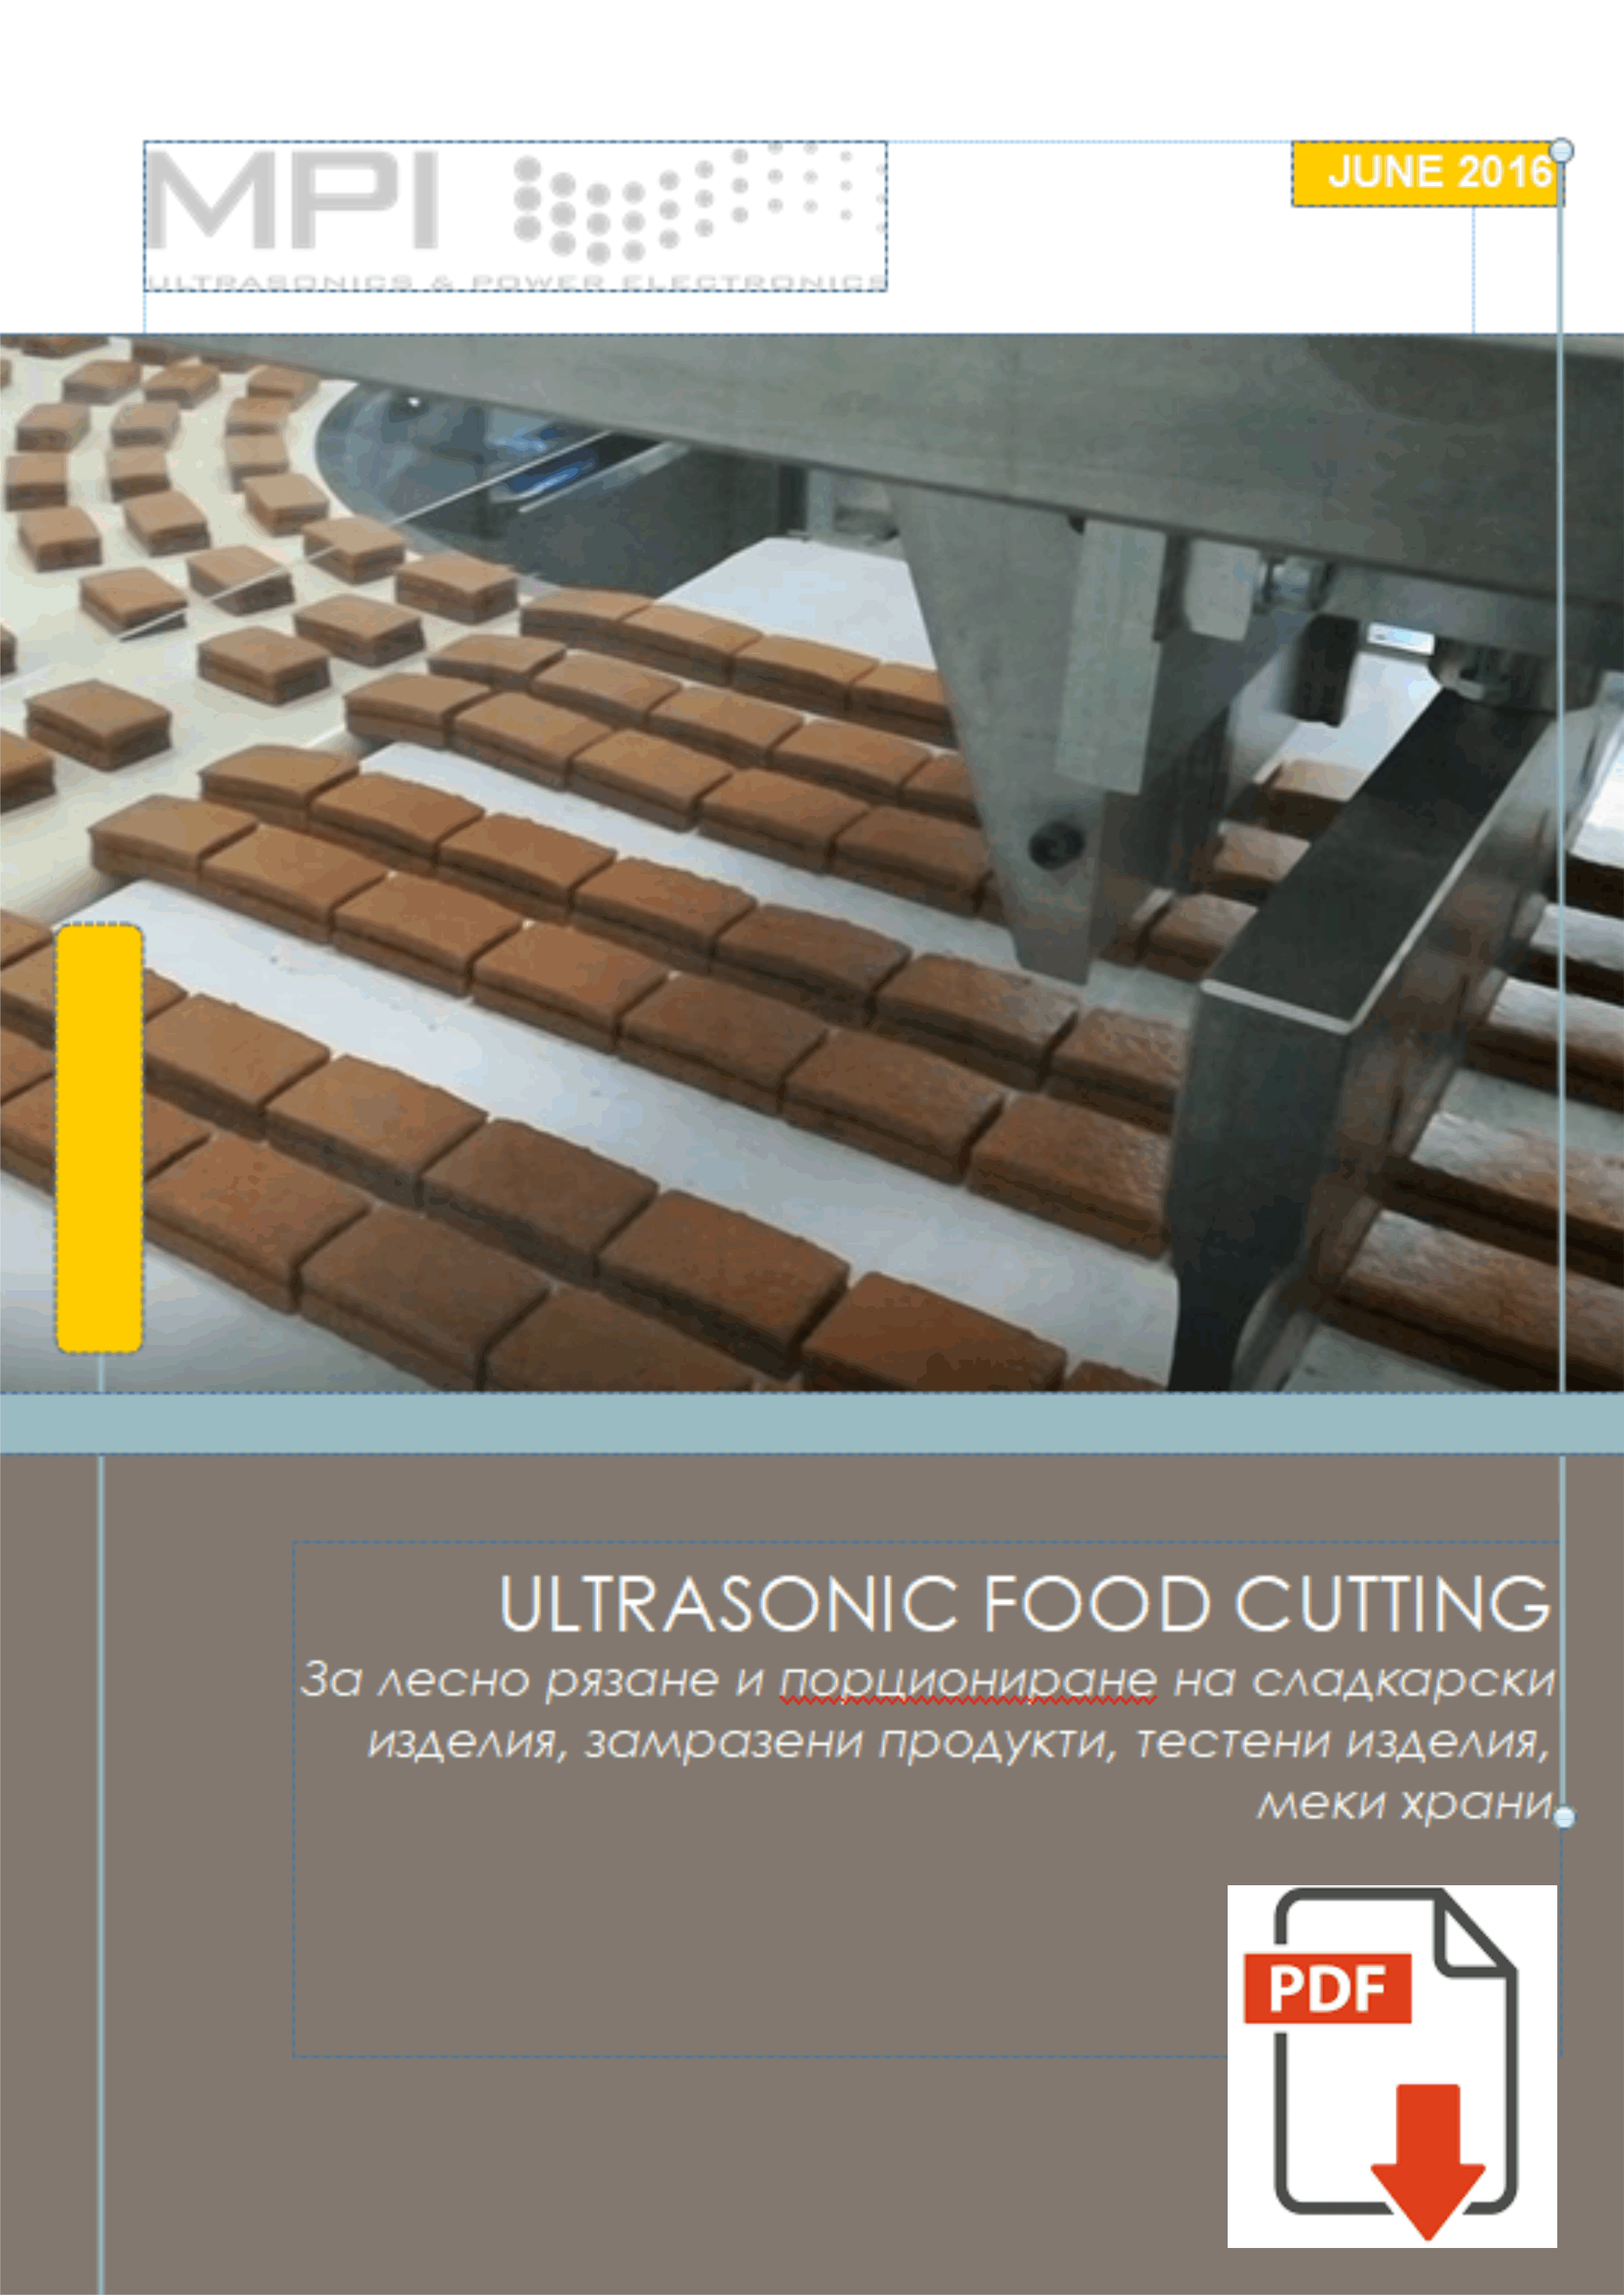 Ultrasonic Food Cutting pdf